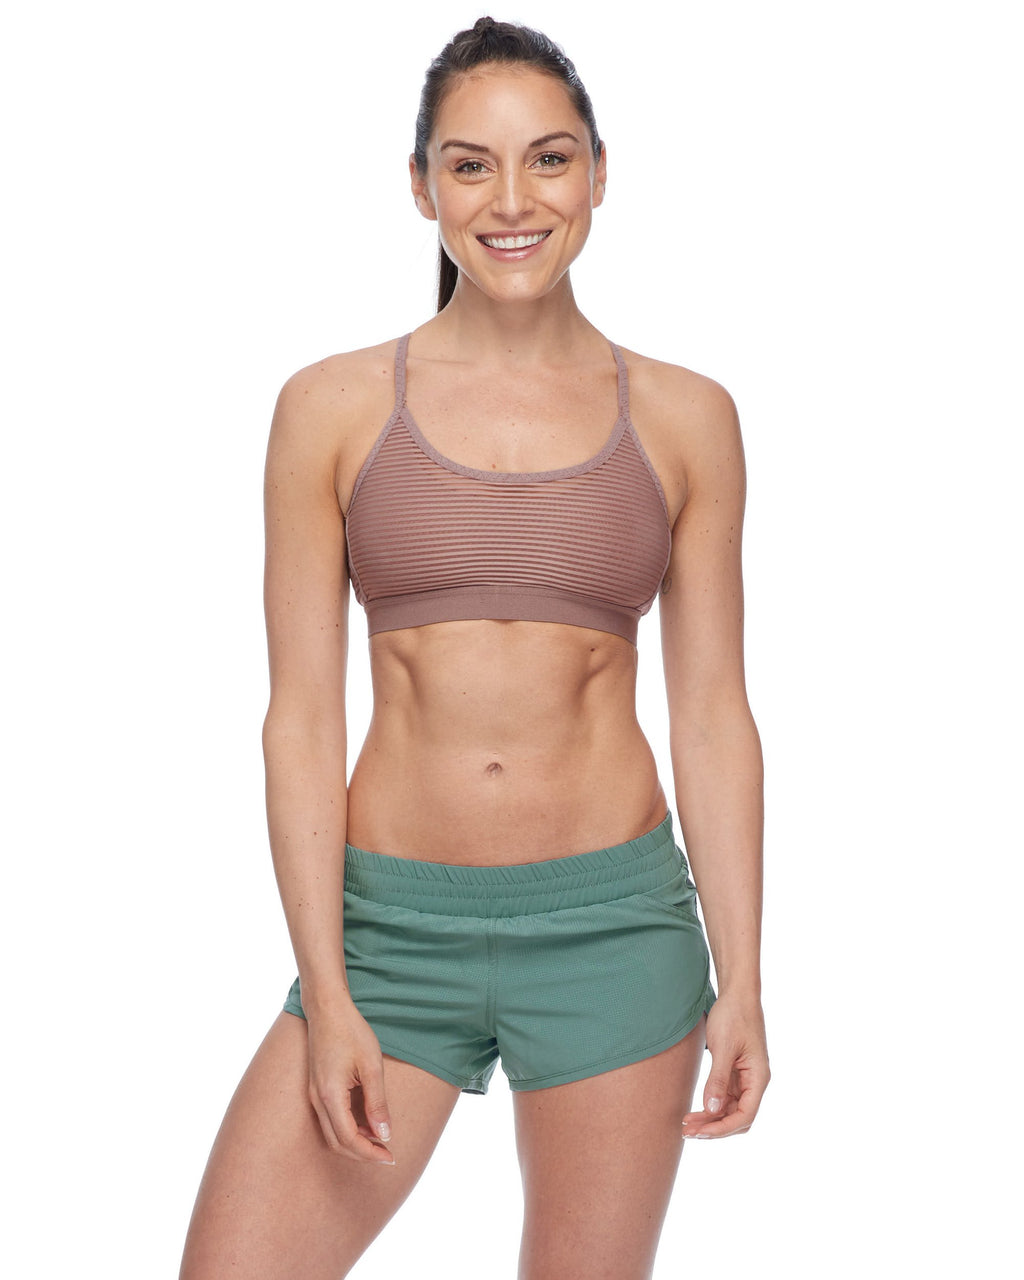 Body Glove Sunna Sanctuary Light-Support Sports Bra - Mocha